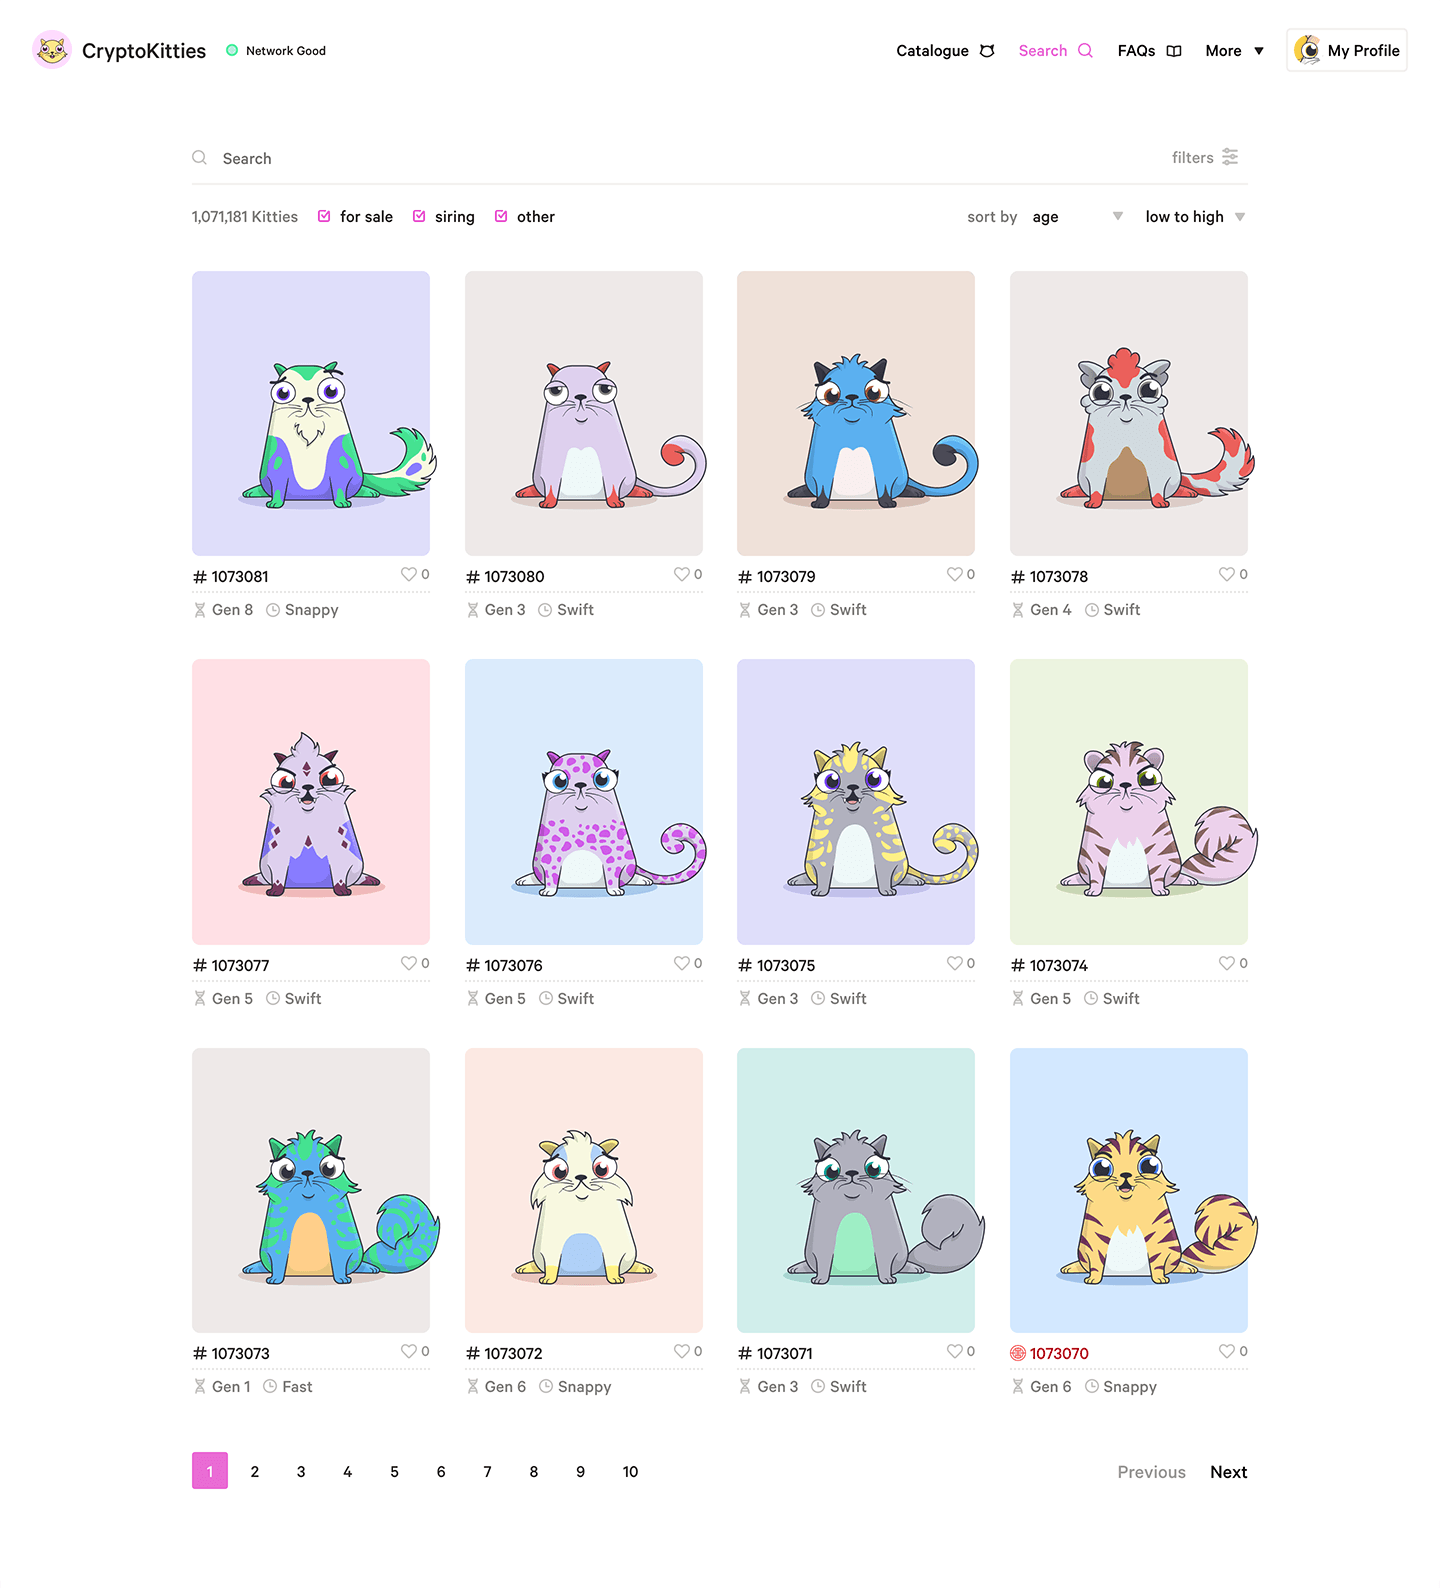 CryptoKitties search dashboard